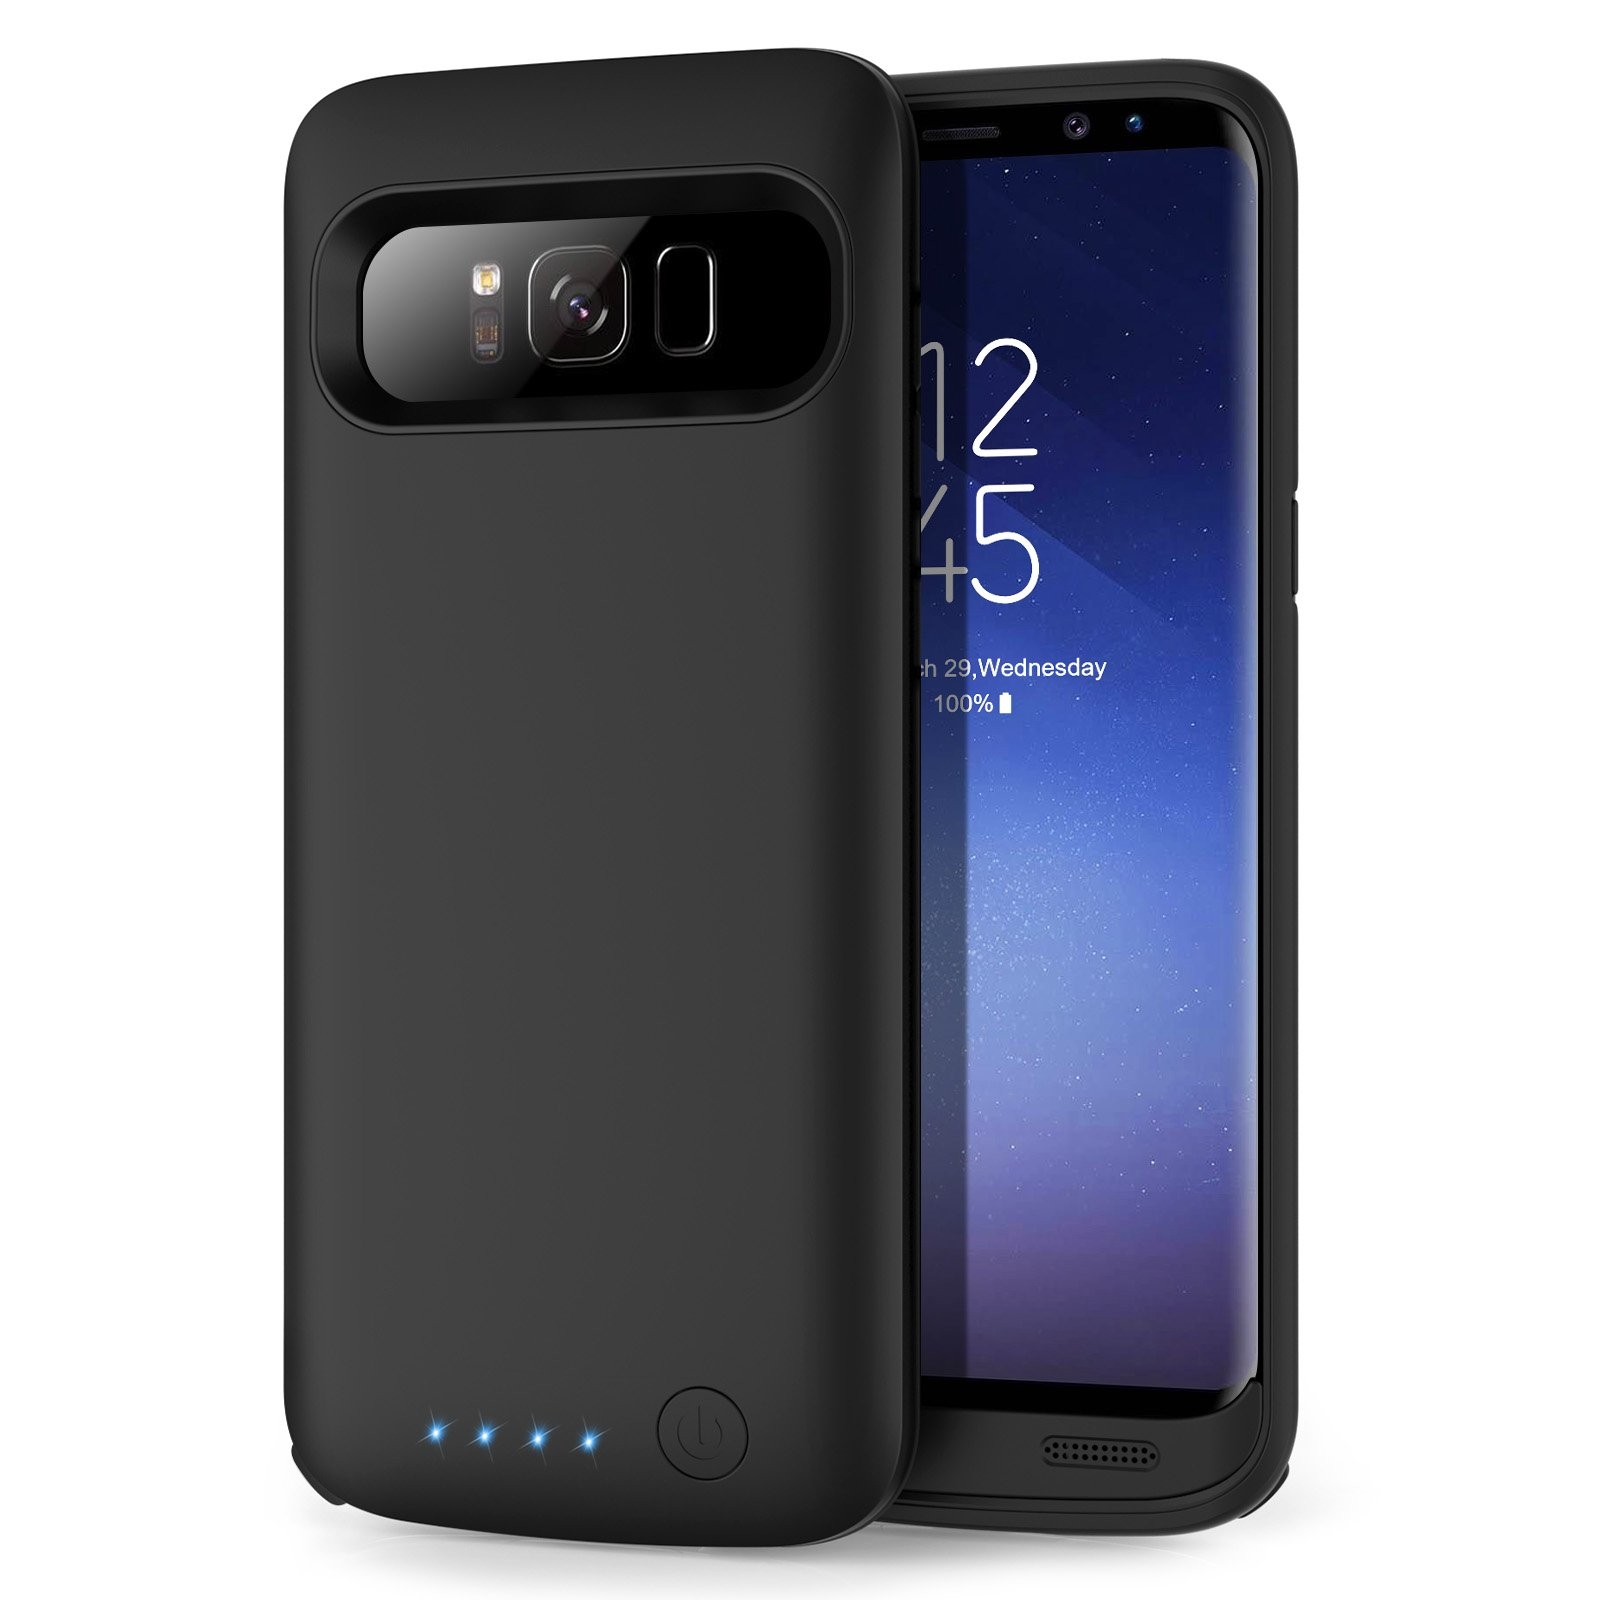 Galaxy S8 Battery case 6000mAh, HETP Protective Rechargeable External Battery Pack for Samsung Galaxy S8 Charging Case Portable Backup Power Bank for Galaxy S8 (5.8 inch) -Black by HETP